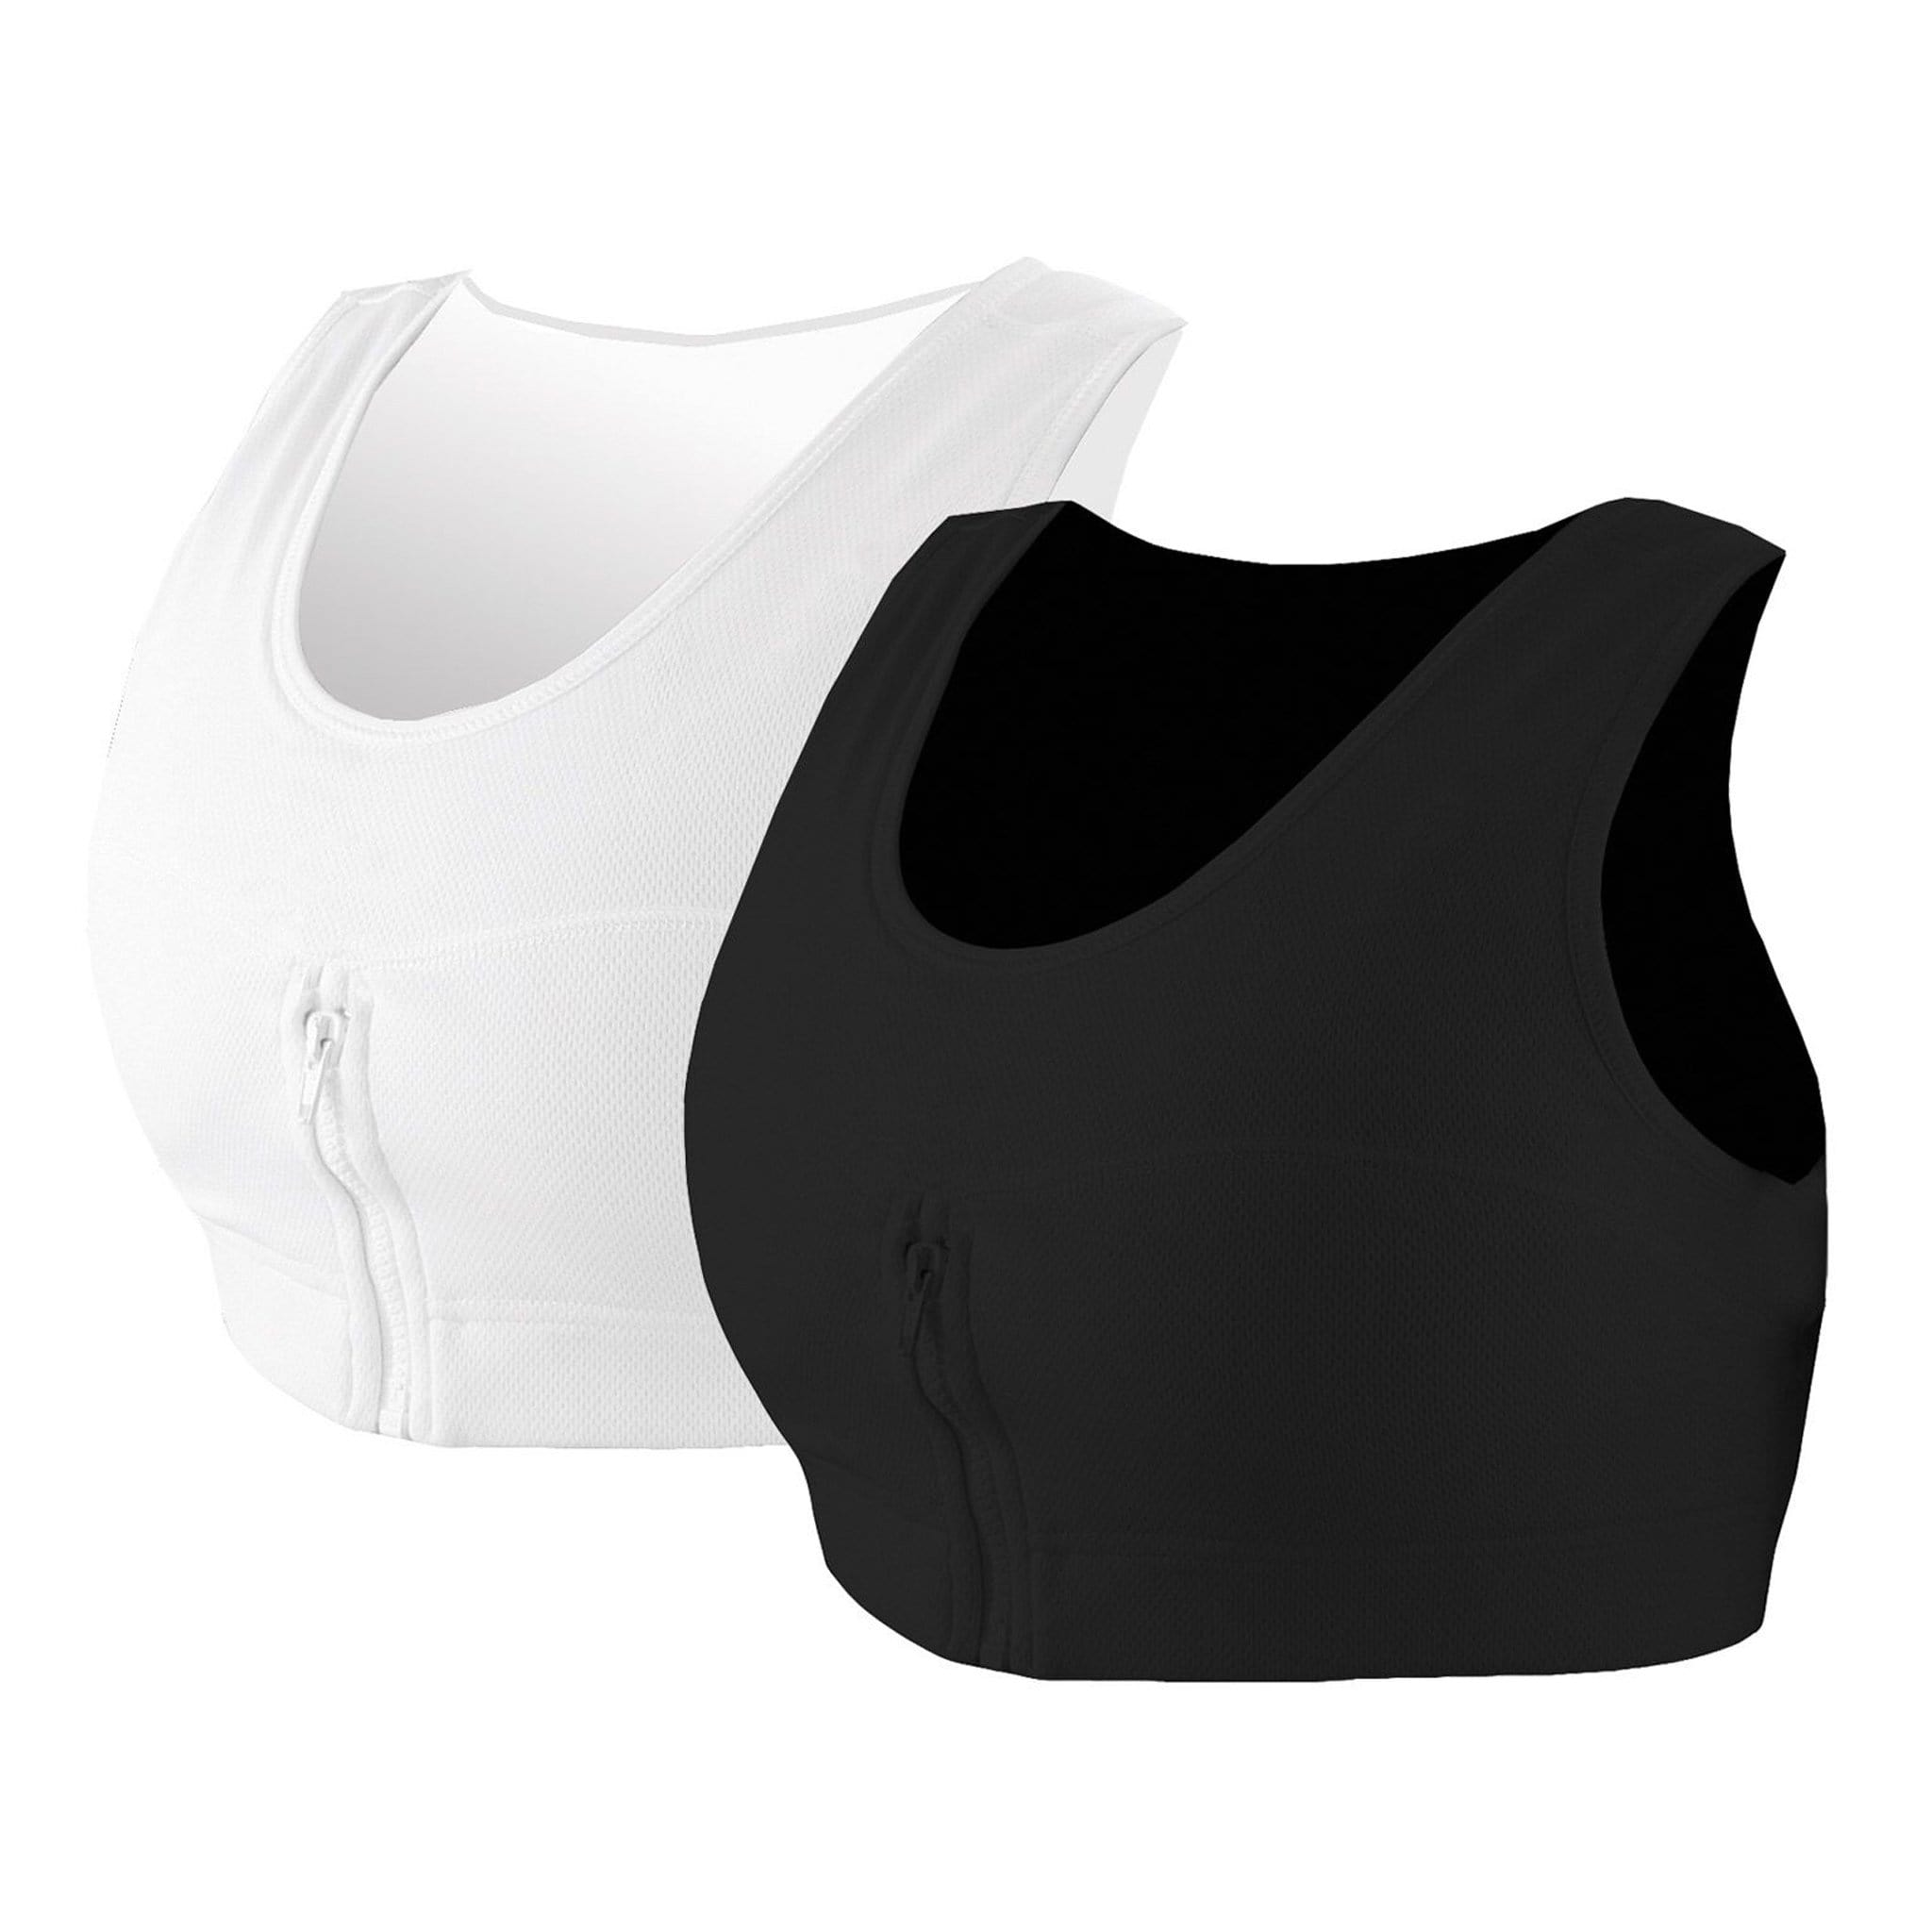 Equetech Anti-Bounce Bra R